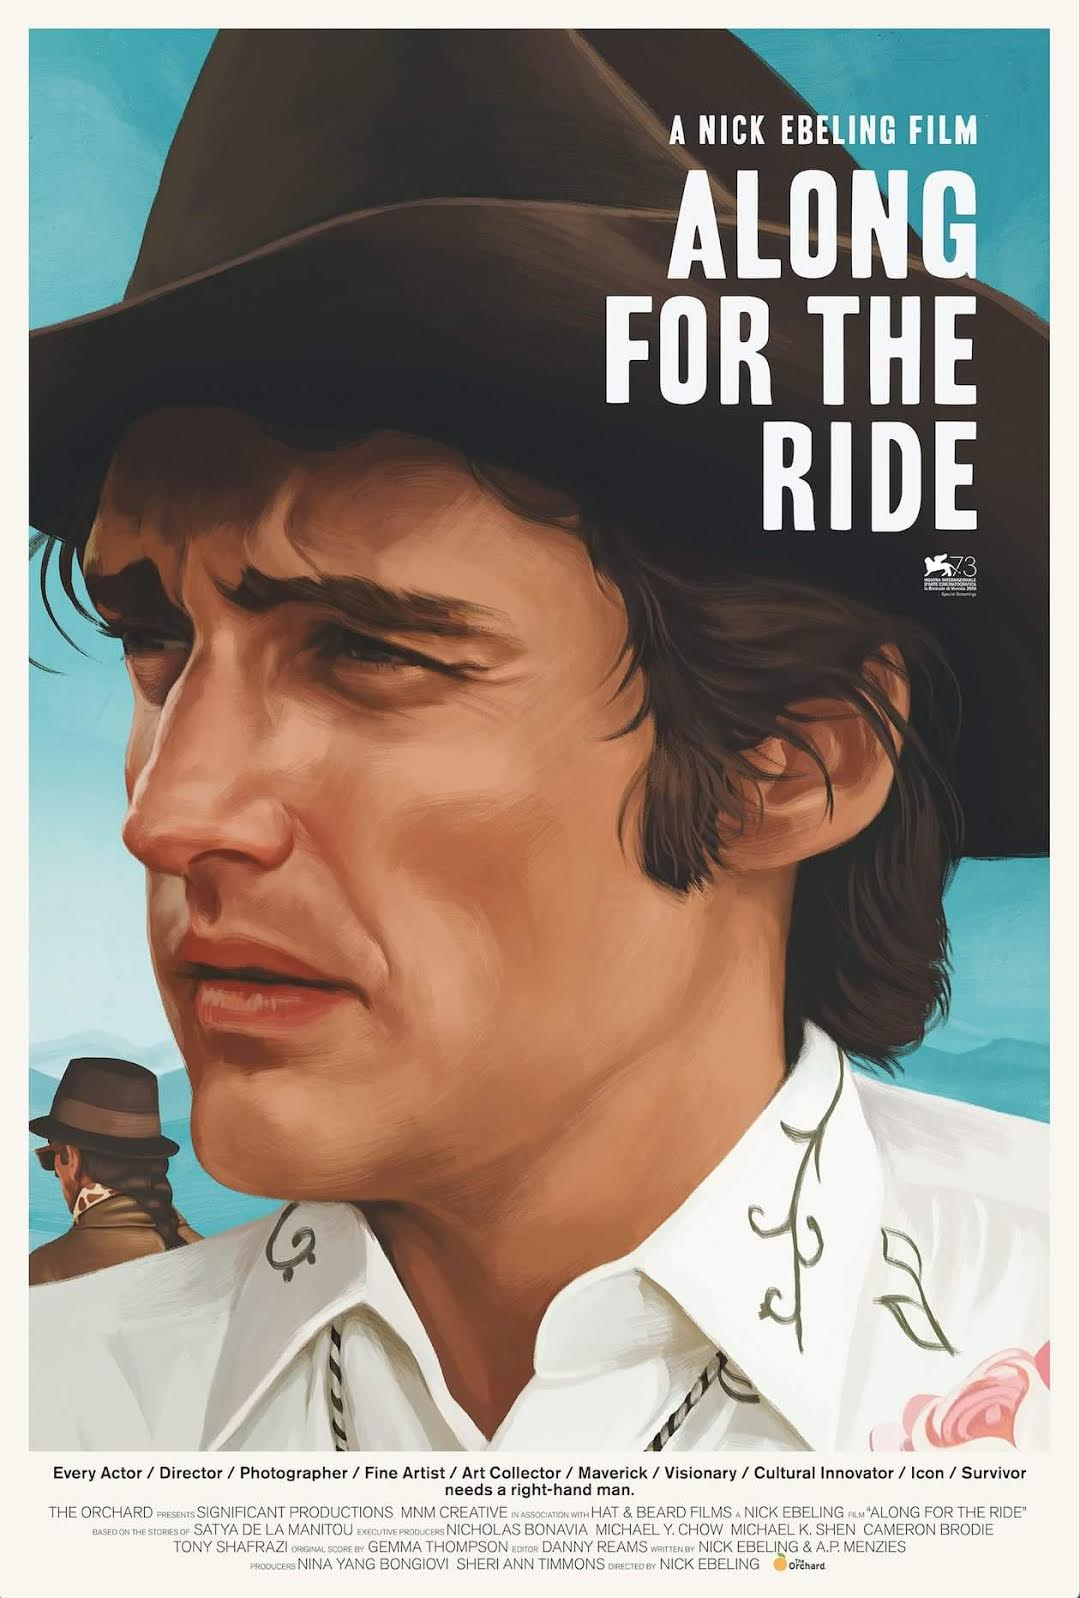 - ALONG FOR THE RIDE explores the highs, lows and phoenix-like ascension of iconic Hollywood maverick Dennis Hopper - as seen through the eyes of his longtime right-hand man and devoted friend, Satya de la Manitou. Nick Ebeling's debut feature film chronicles the unlikely duo's incredible 40+ year journey and enduring bond, as intimately complex as Hopper's own legendary career.Featuring: David Lynch, Wim Wenders, Ed Ruscha, Frank Gehry, Russ Tamblyn, Dean Stockwell, Linda Manz, Michael Madsen, Dwight Yoakam, and Damon Albarn & Jamie Hewlett of Gorillaz. Original Score by Gemma Thompson of Savages